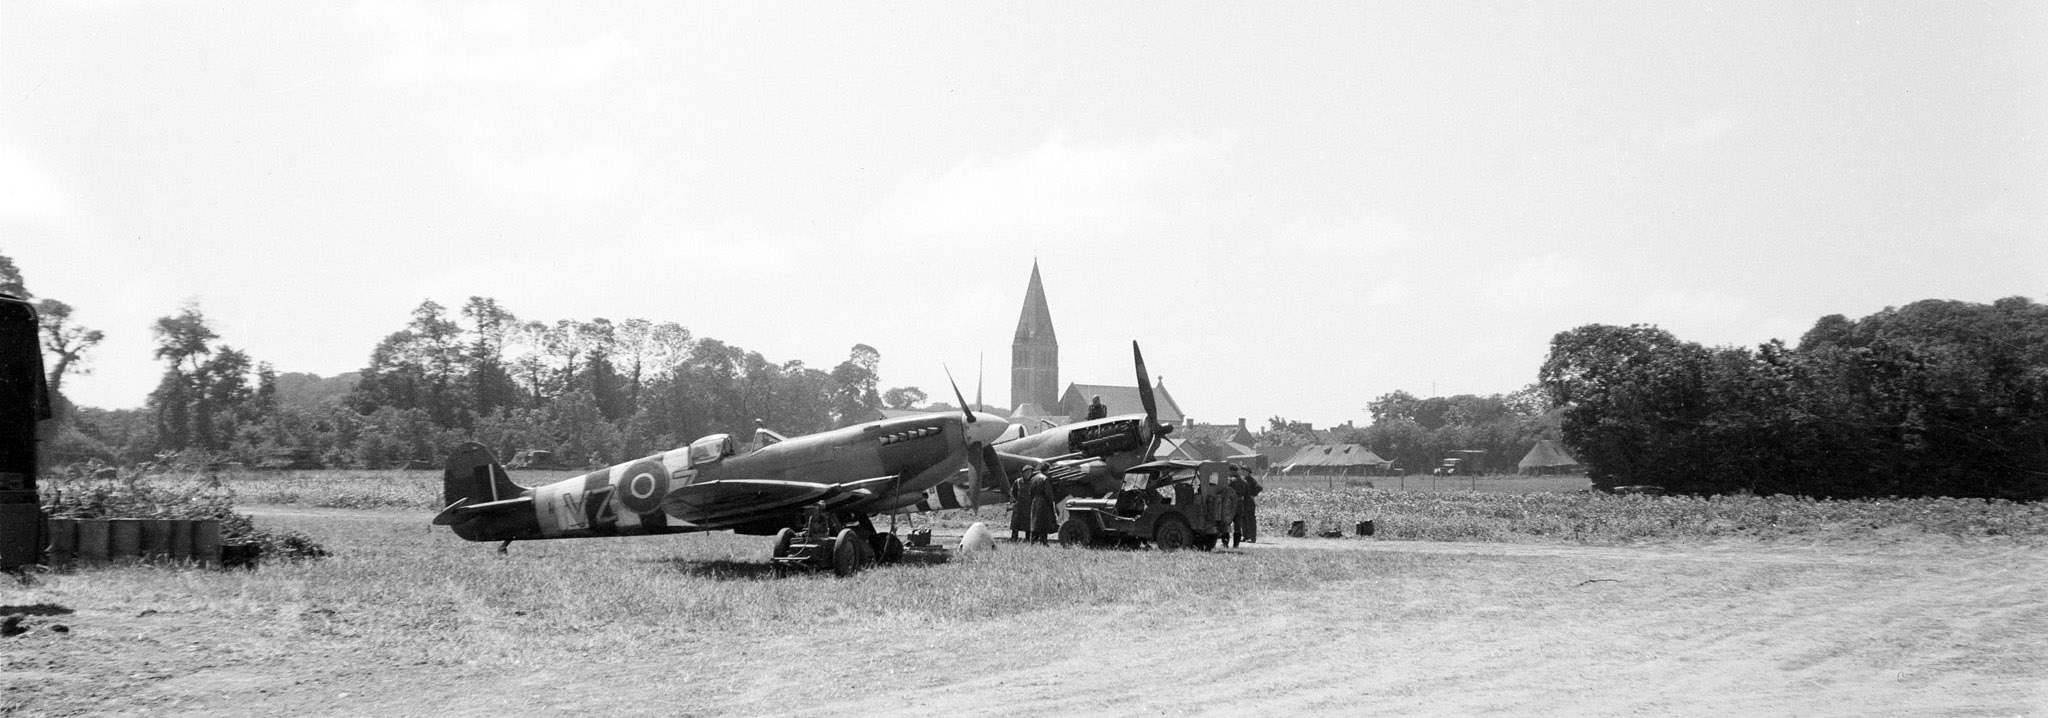 A black and white photo of propeller fighter aircraft on a field with a church spire in the background.